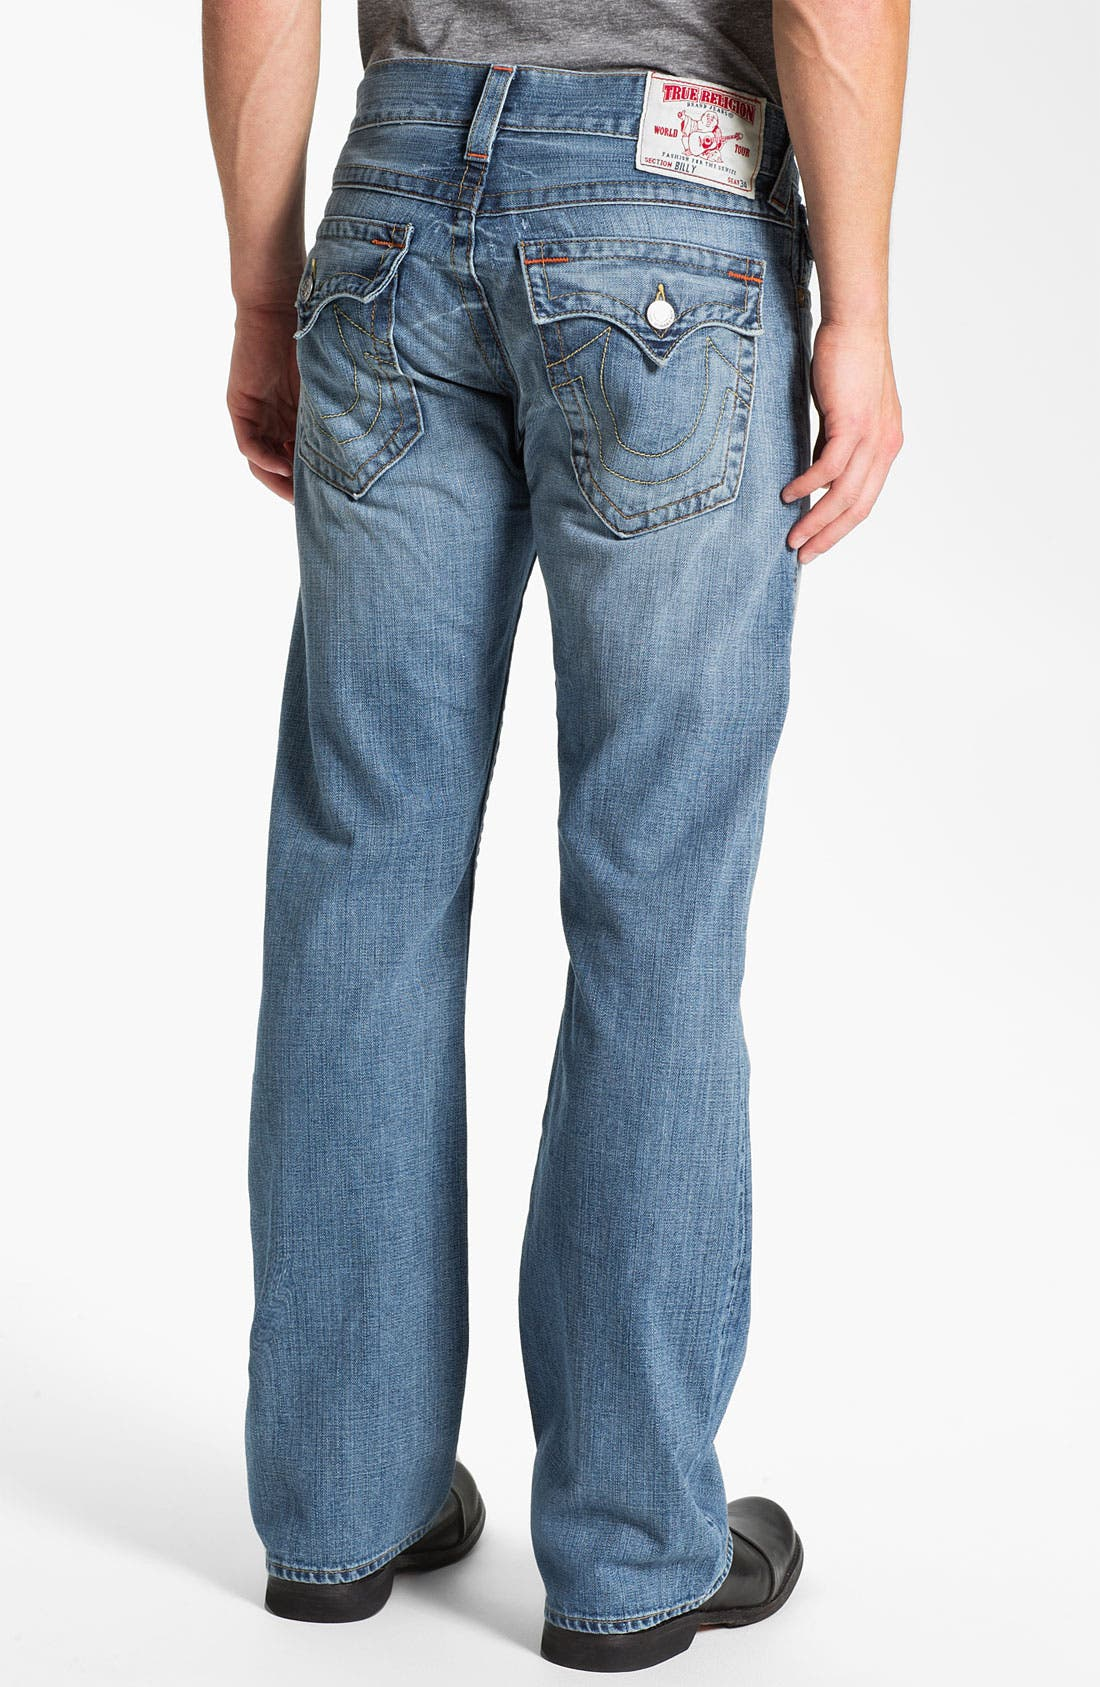 Main Image - True Religion Brand Jeans 'Billy' Bootcut Jeans (Vam Shade Horizon)